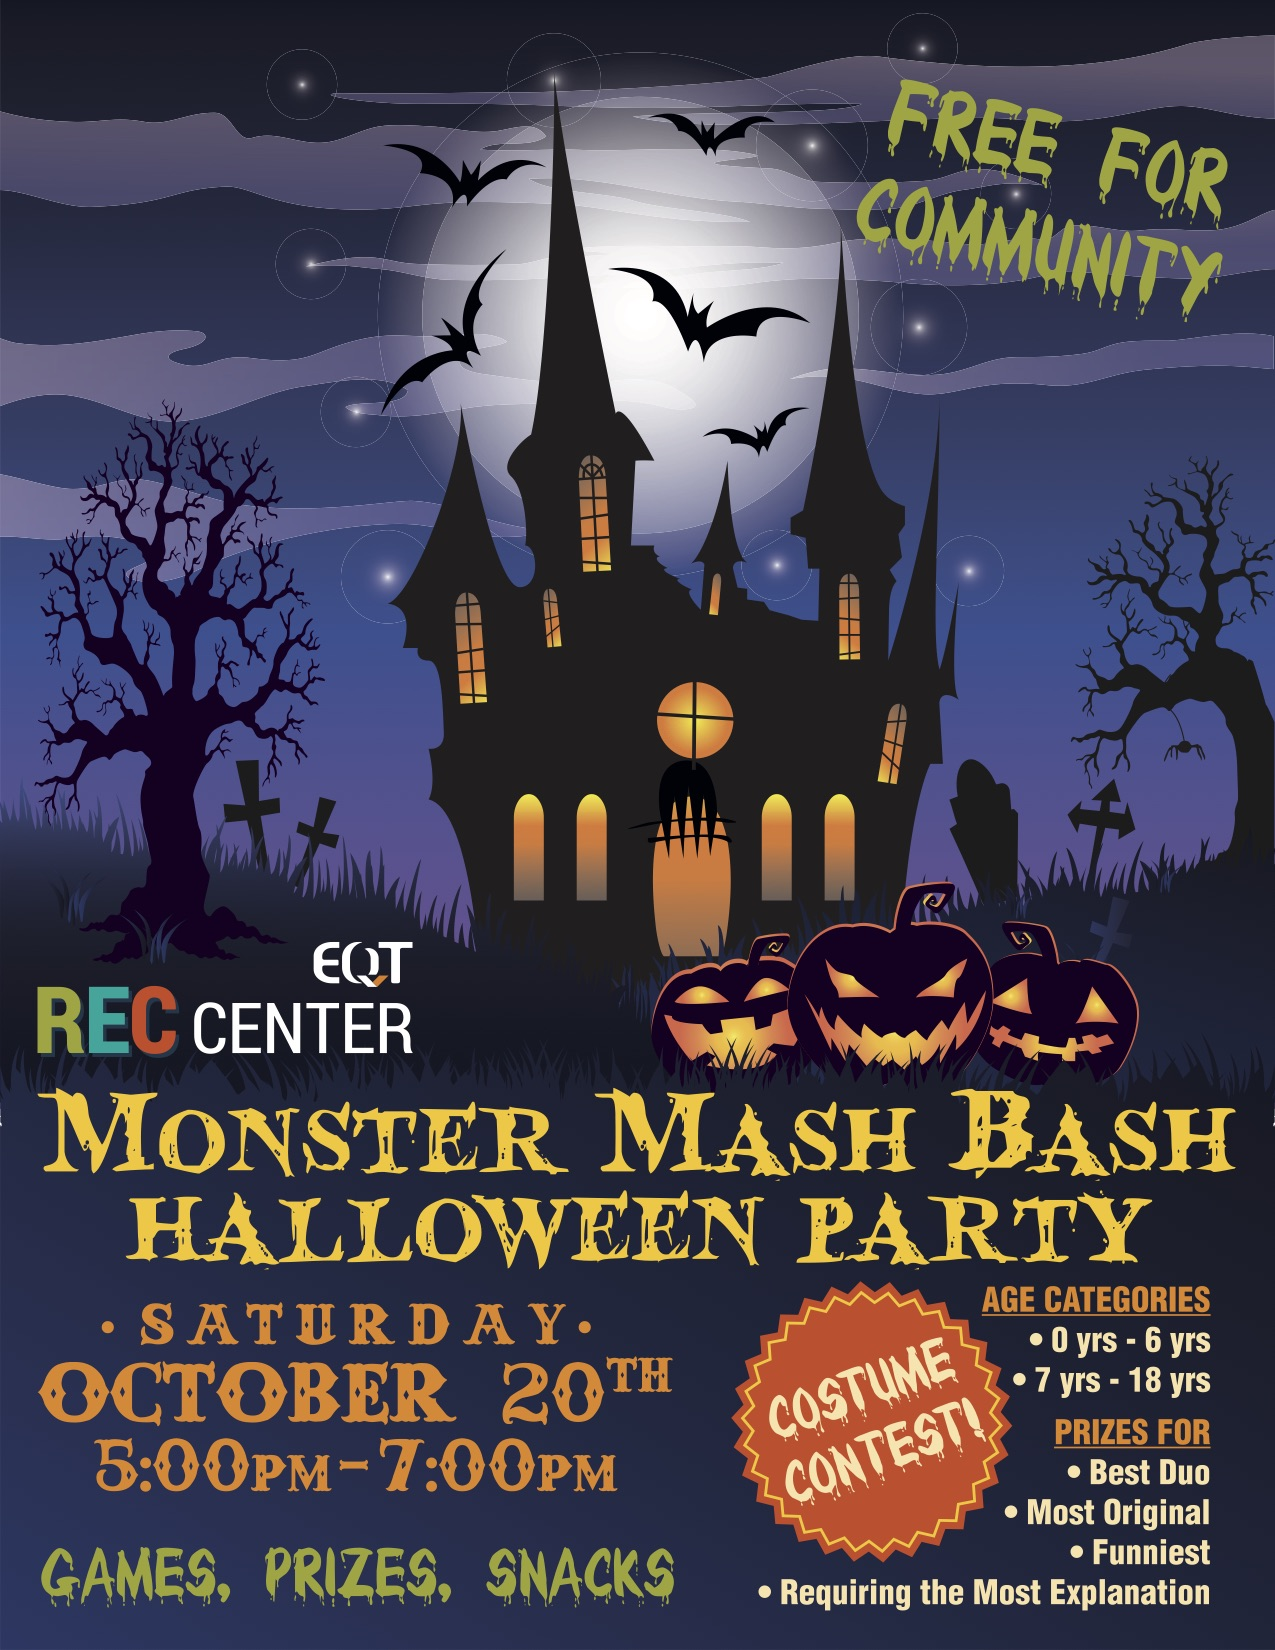 monster mash bash halloween party